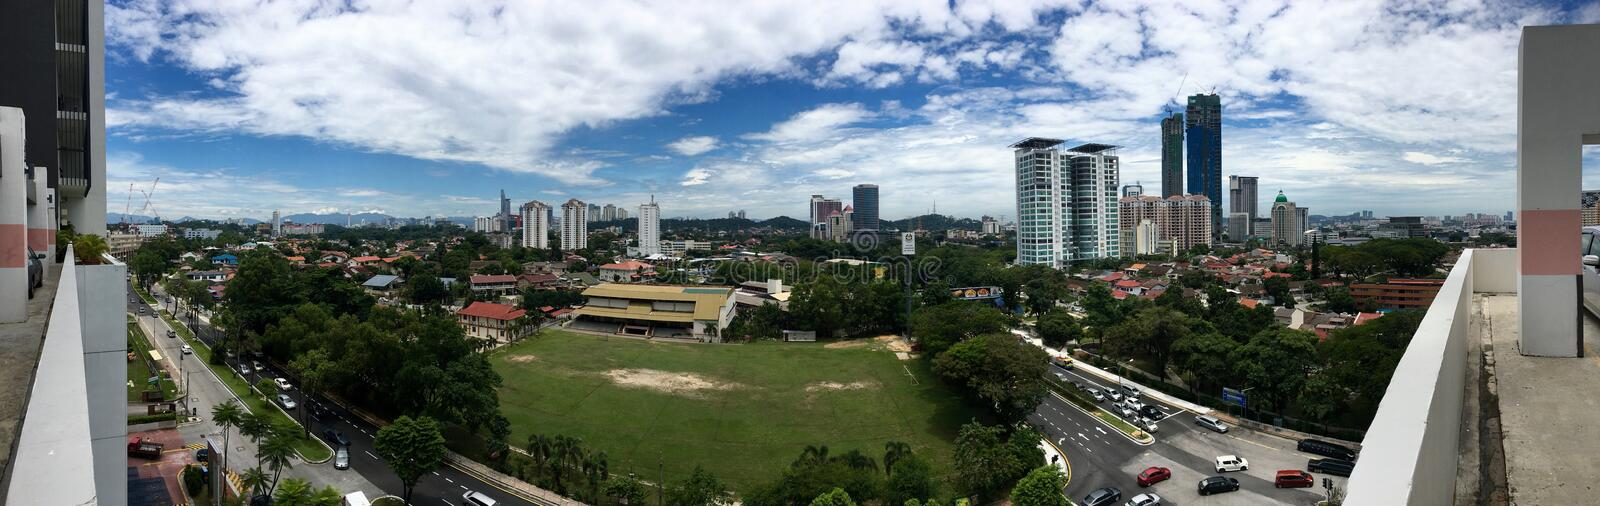 Panoramic view of School Field and surrounding in Petaling Jaya. Selangor, Malaysia Section 14 with school building, condominium, housing area and skyscraper stock photography